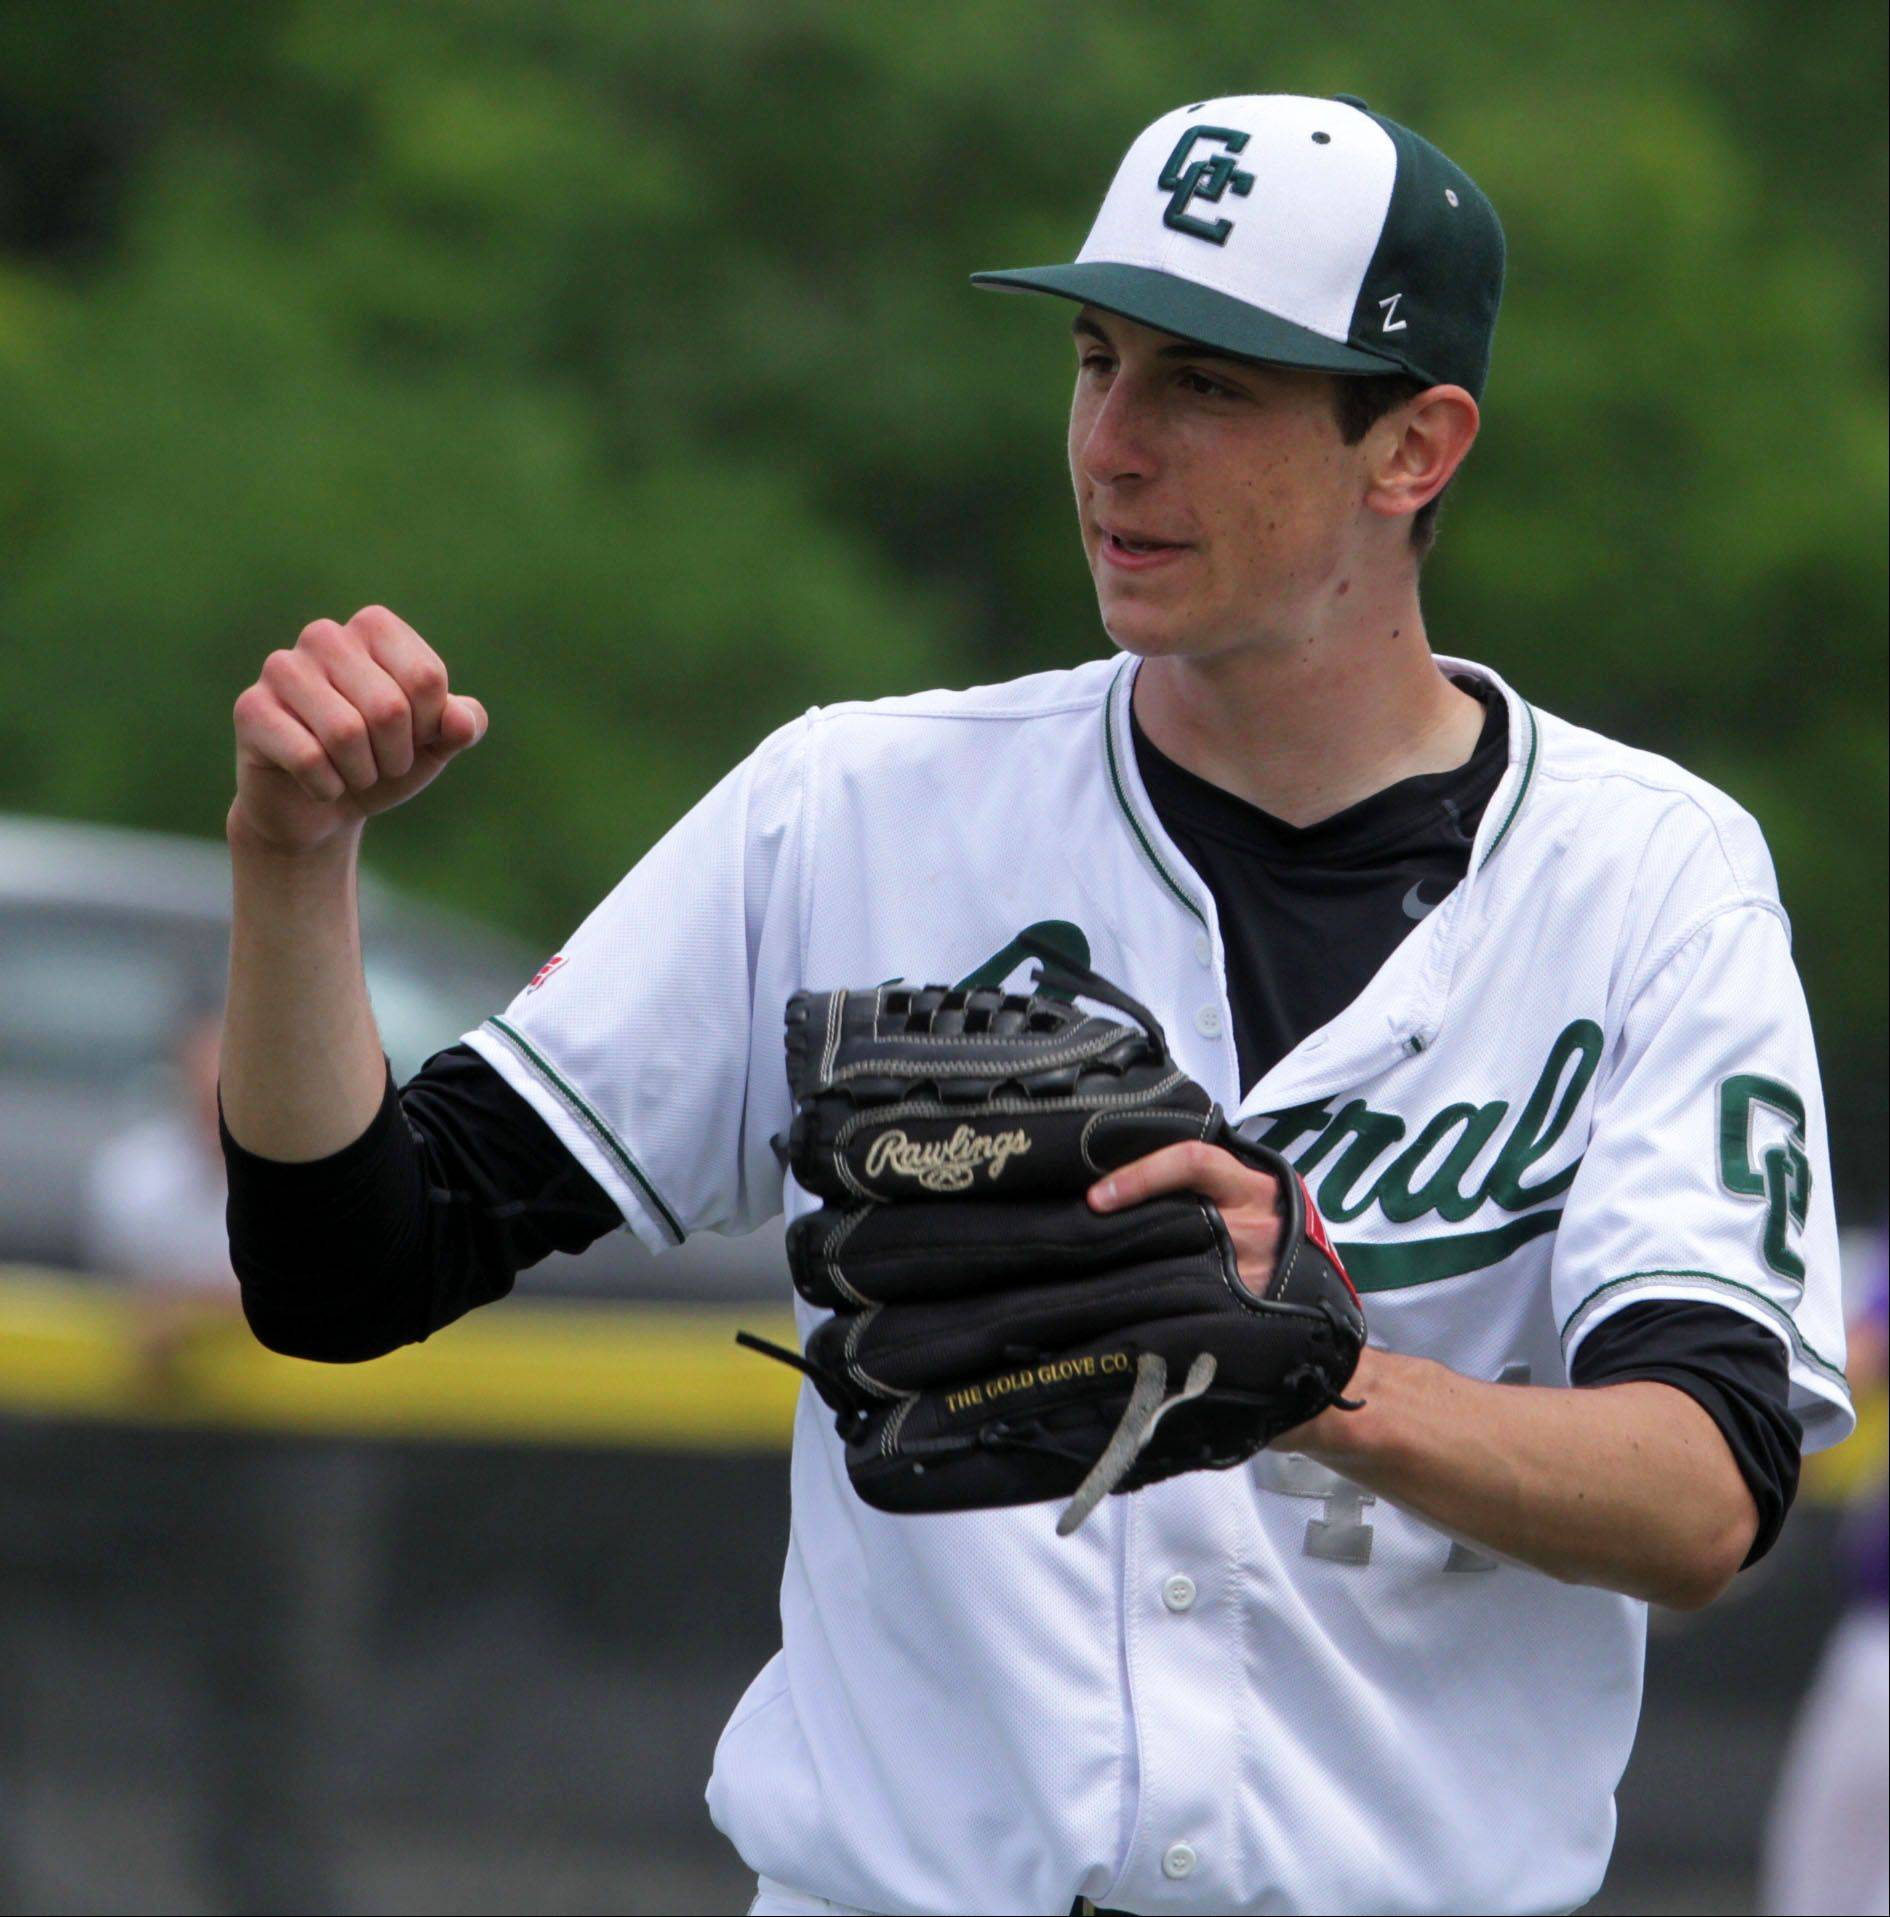 Grayslake Central starter Jack Spicer gives a fist pump after getting the final out of an inning during the Rams' Class 3A sectional victory over Wauconda on Saturday.